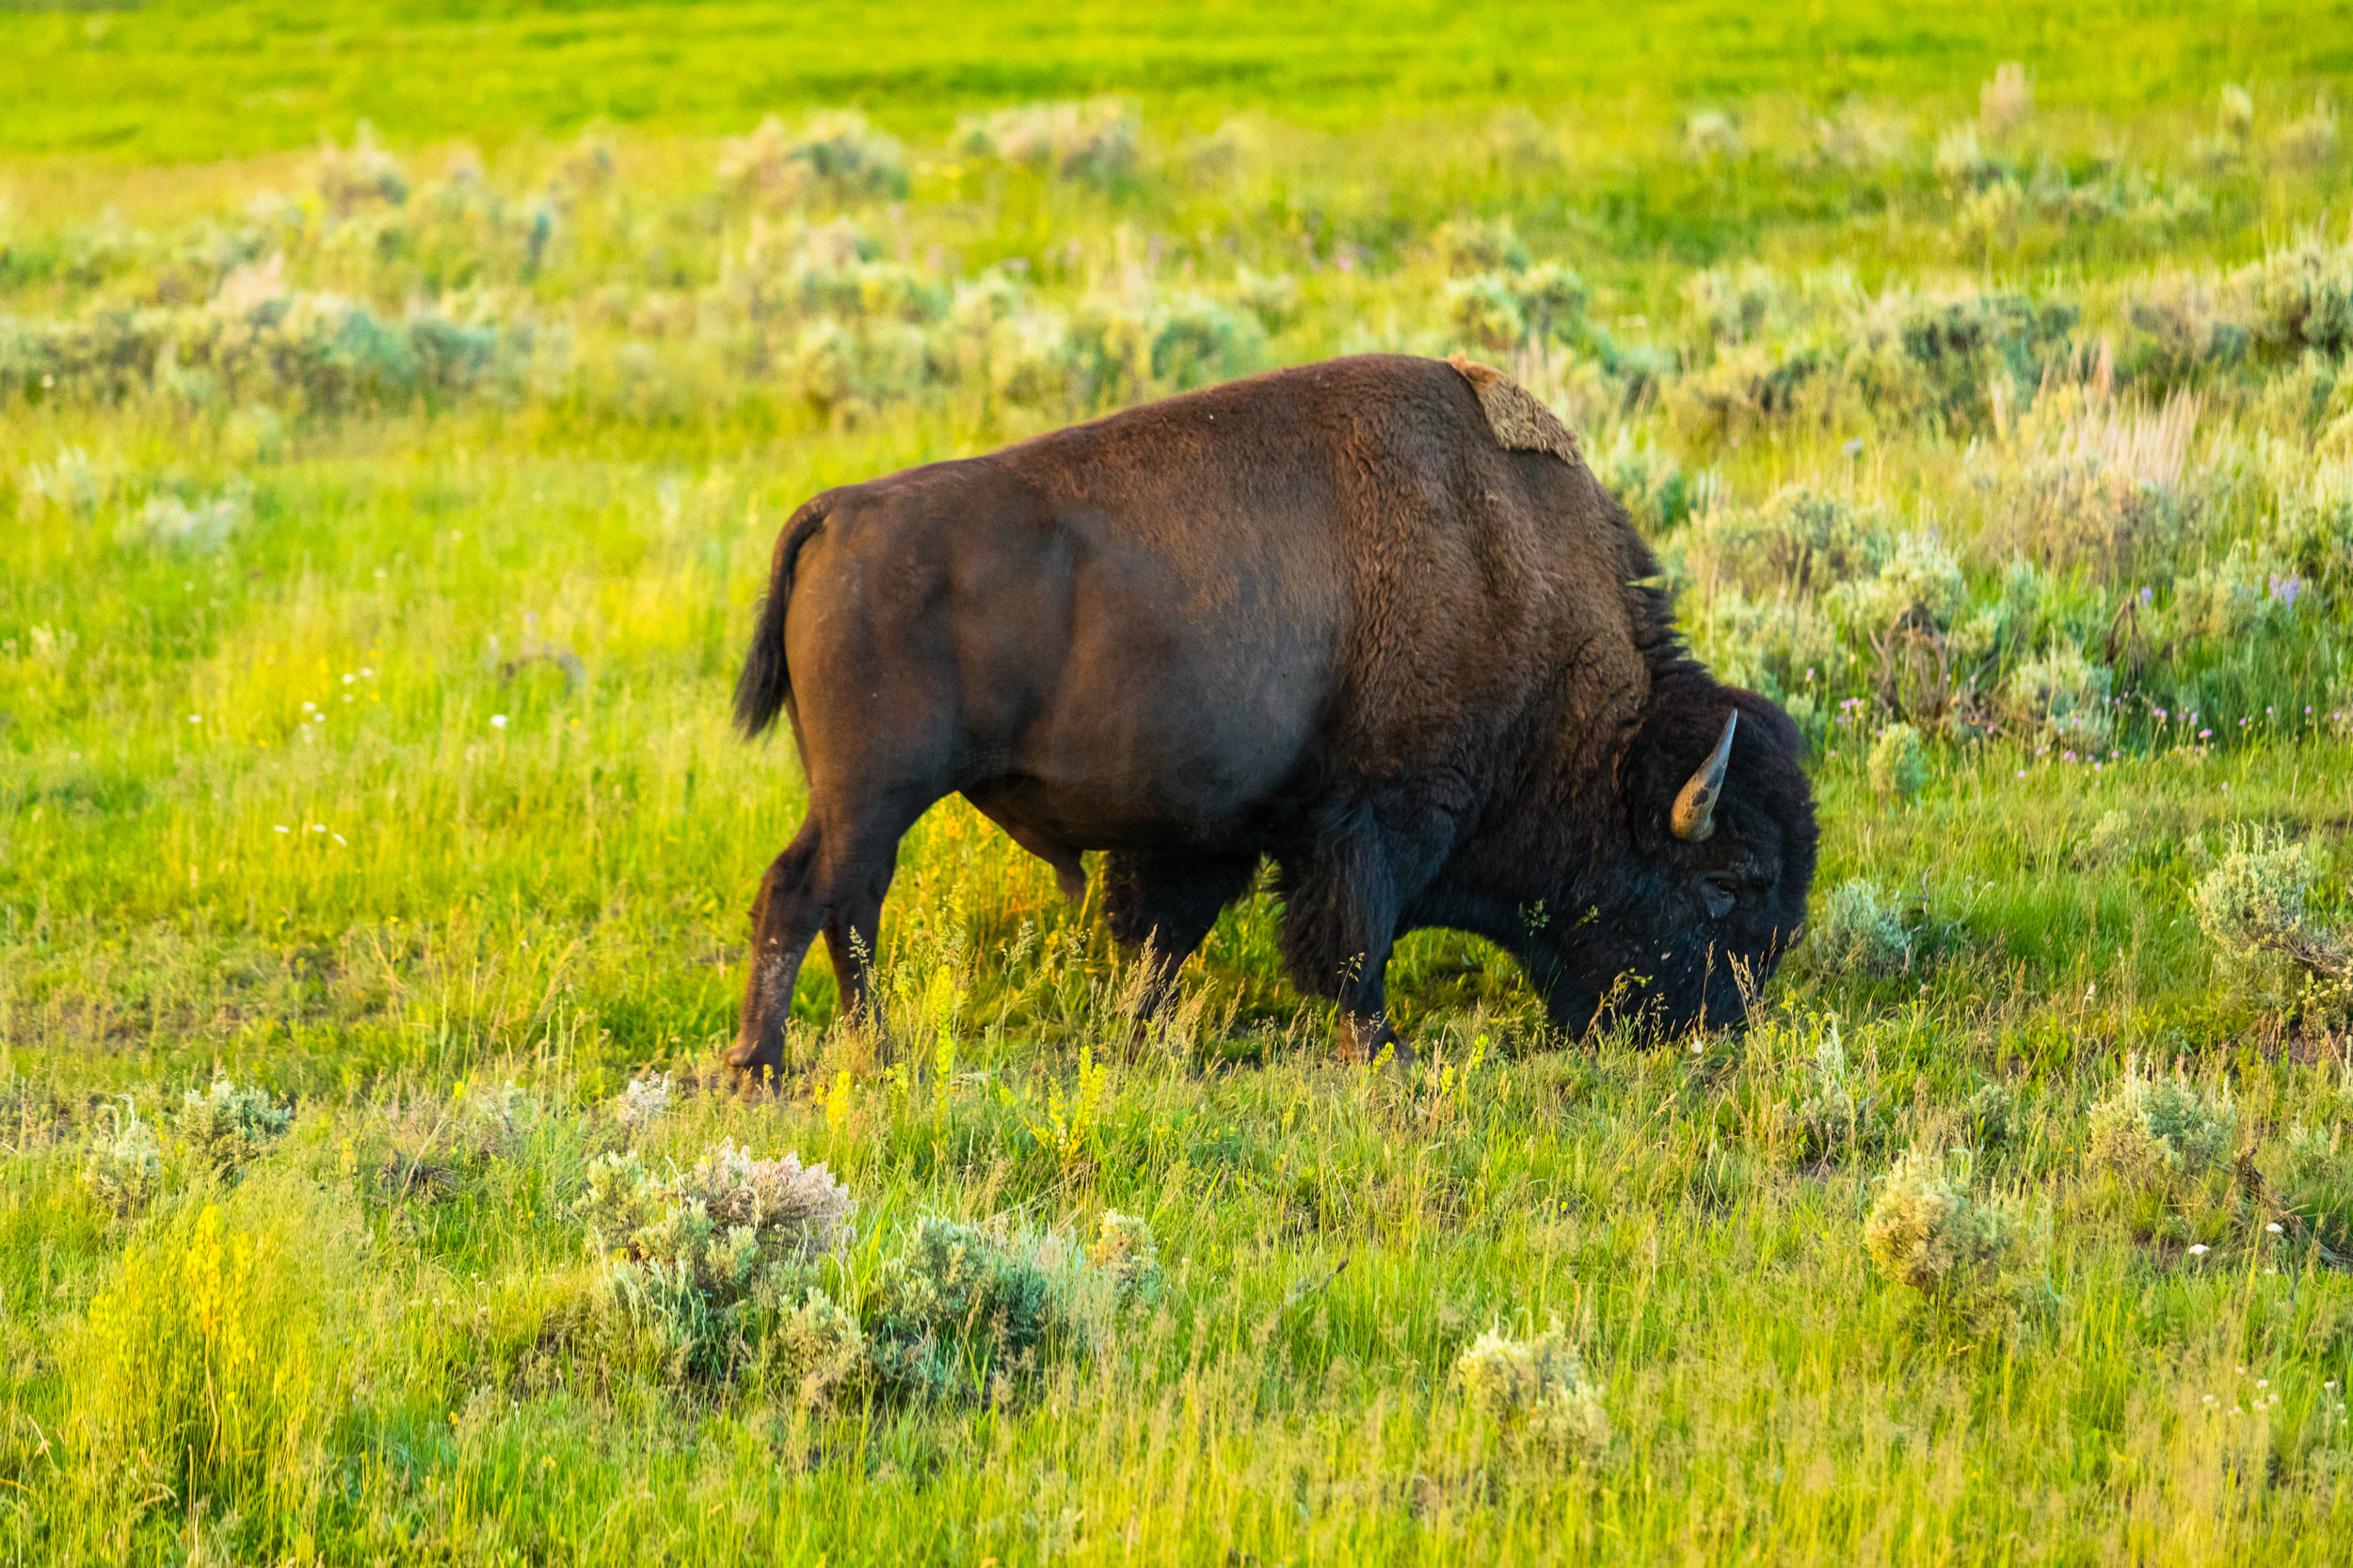 Lamar Valley, Yellowstone National Park, Image # 6045